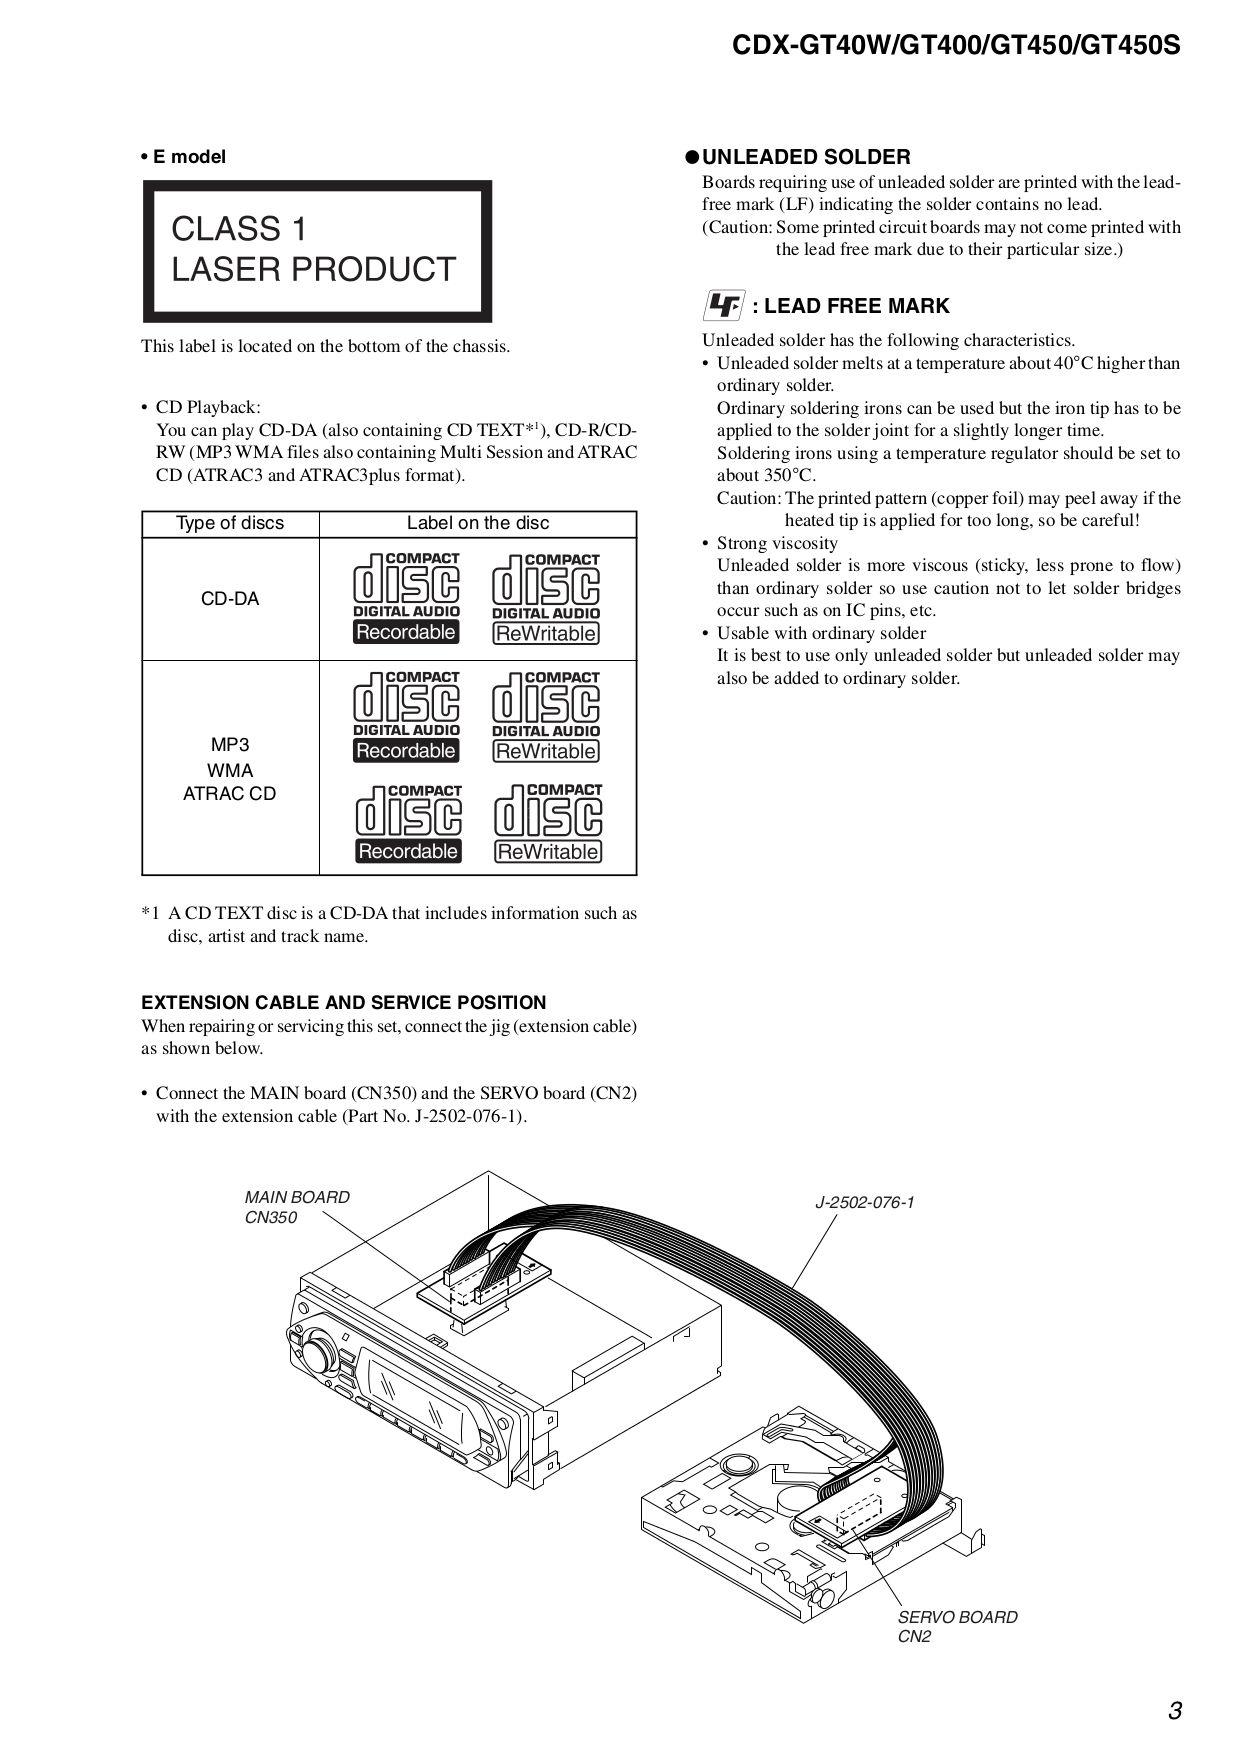 Cool Sony Cdx Gt400 Wiring Diagram Pictures Inspiration - Electrical ...